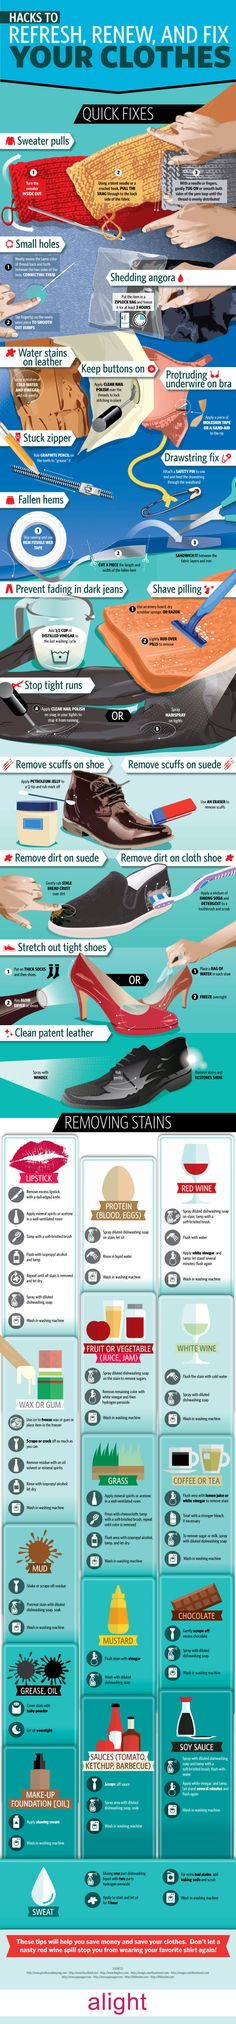 Clothes have a lot of potential problems. Popped buttons, fallen hems, running tights, holes, stains, and scuffs. The list goes on and on. Fortunately, this graphic will show you how to fix the most common clothing mishaps.